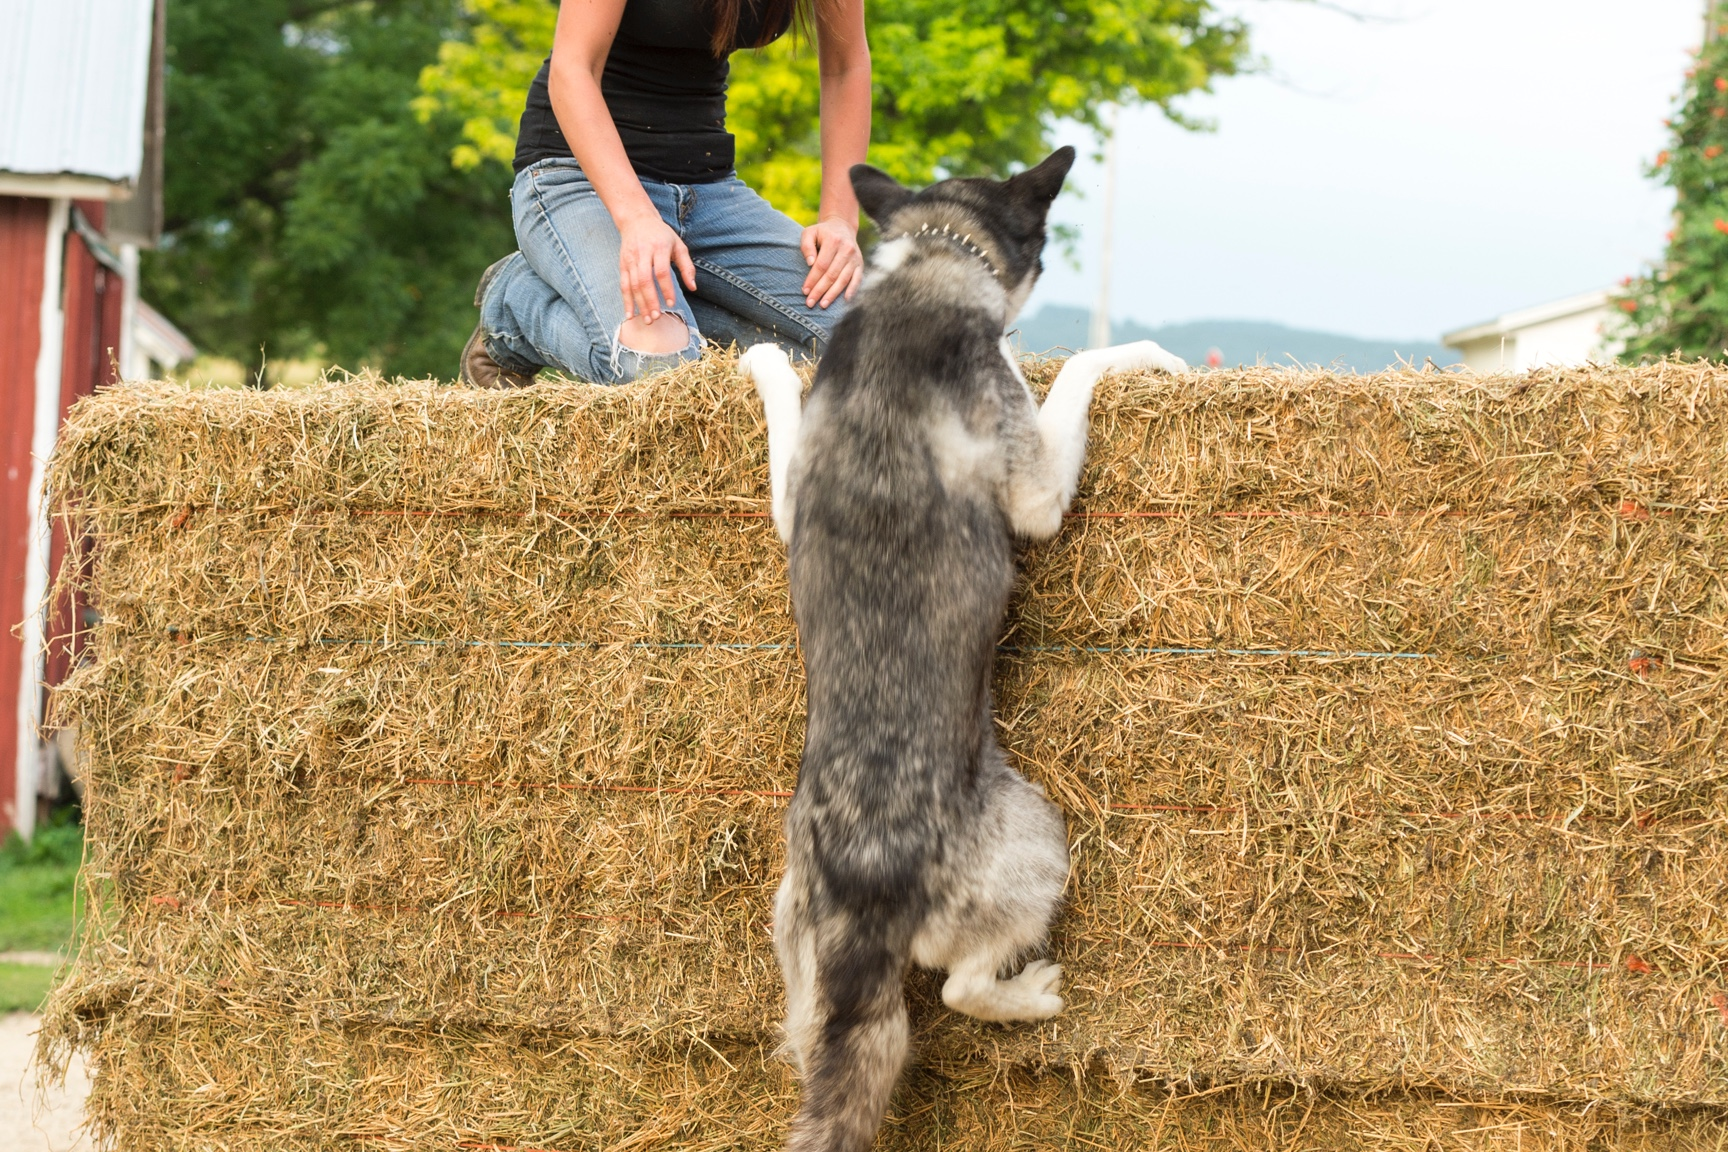 A dog climbs a hay bale to be with the woman kneeling on top.